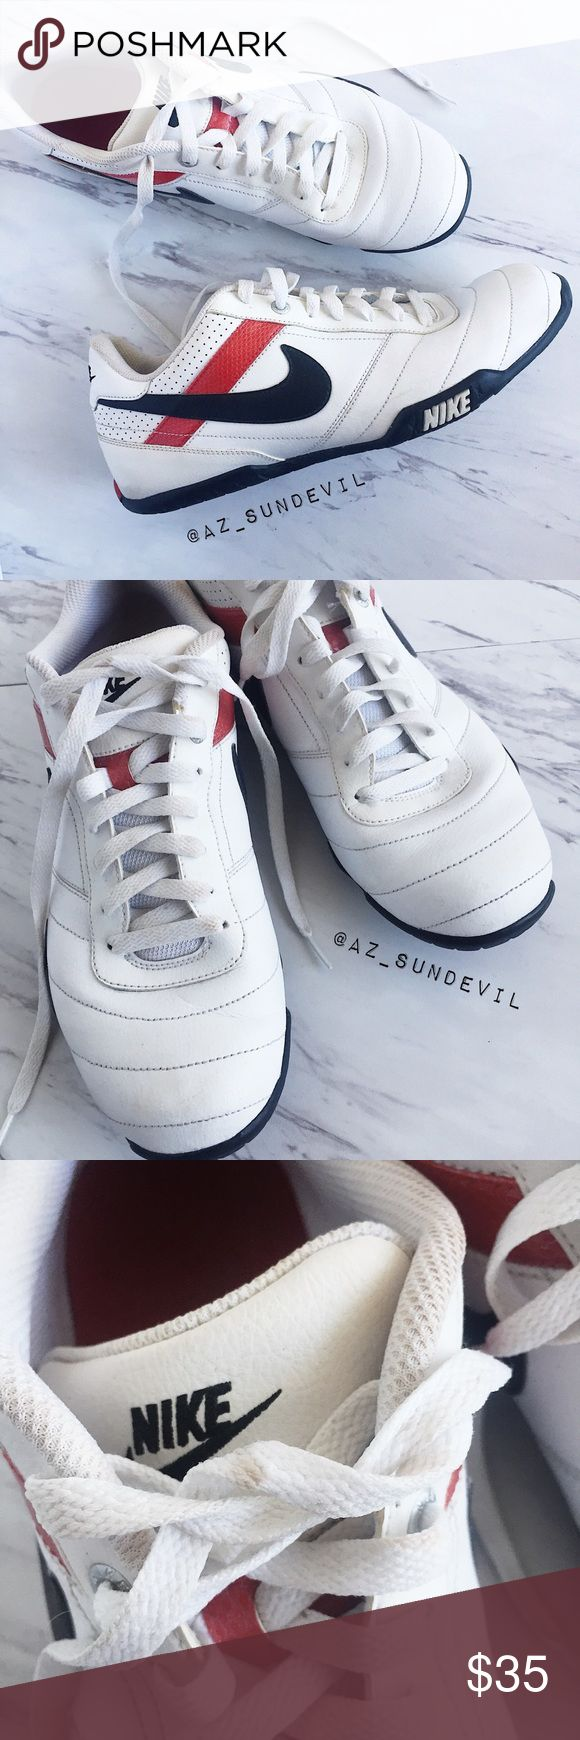 Nike Street Pana II Shoes Nike | 'Street Pana II' casual sneaker. White with black Nike swoosh and red stripe. Slight stains from wear as shown in photos but in otherwise very good used condition.   Size: 11 Nike Shoes Sneakers